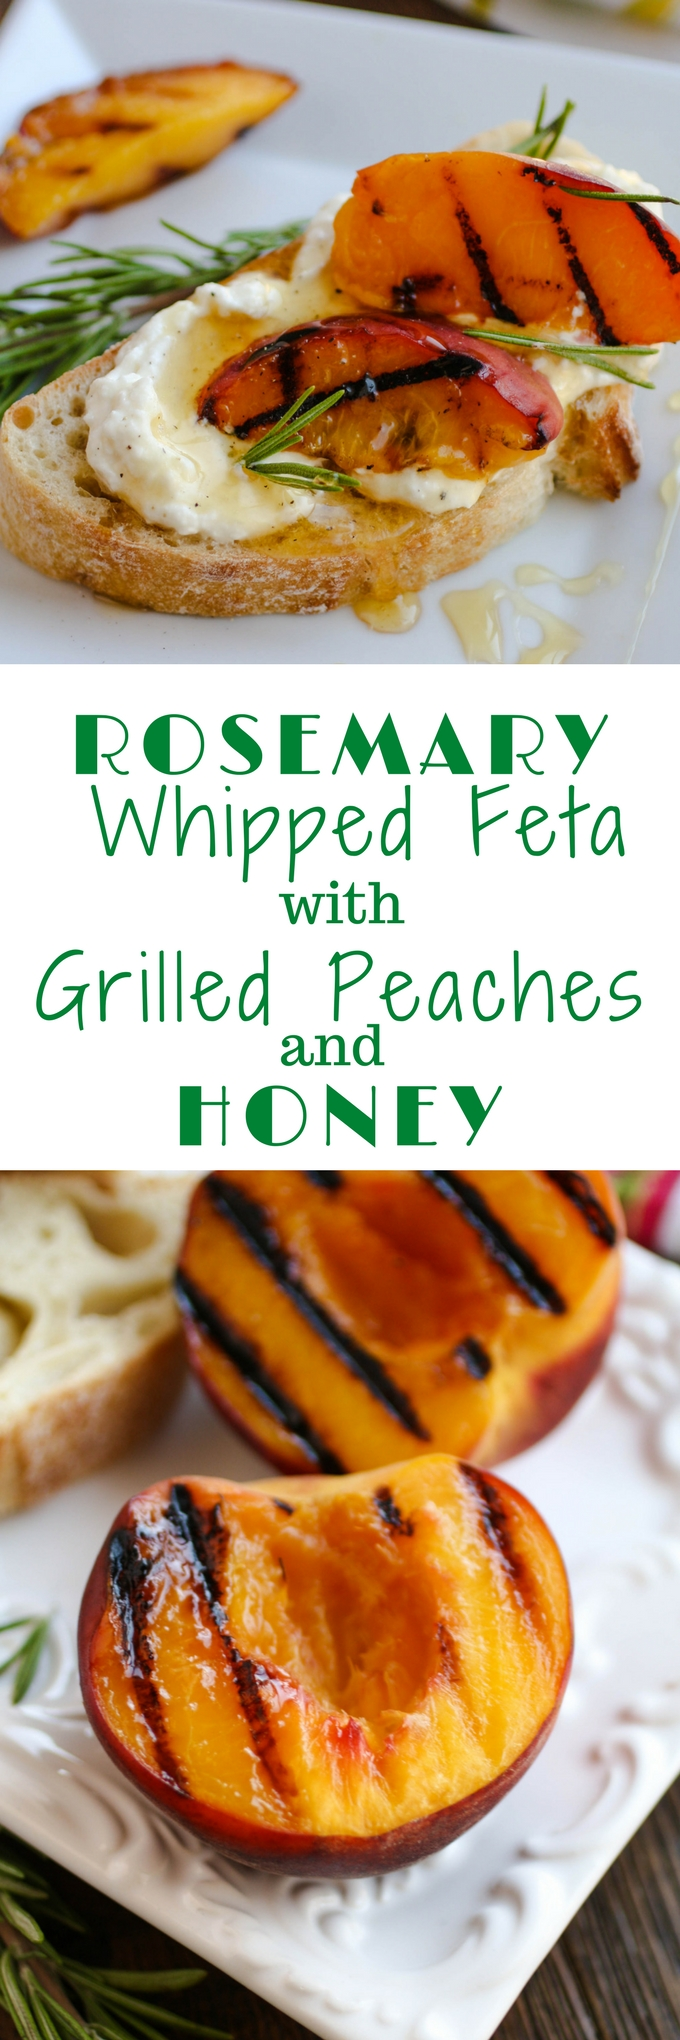 Rosemary Whipped Feta with Grilled Peaches and Honey should be on your list for your next get together. This appetizer is quite a treat!